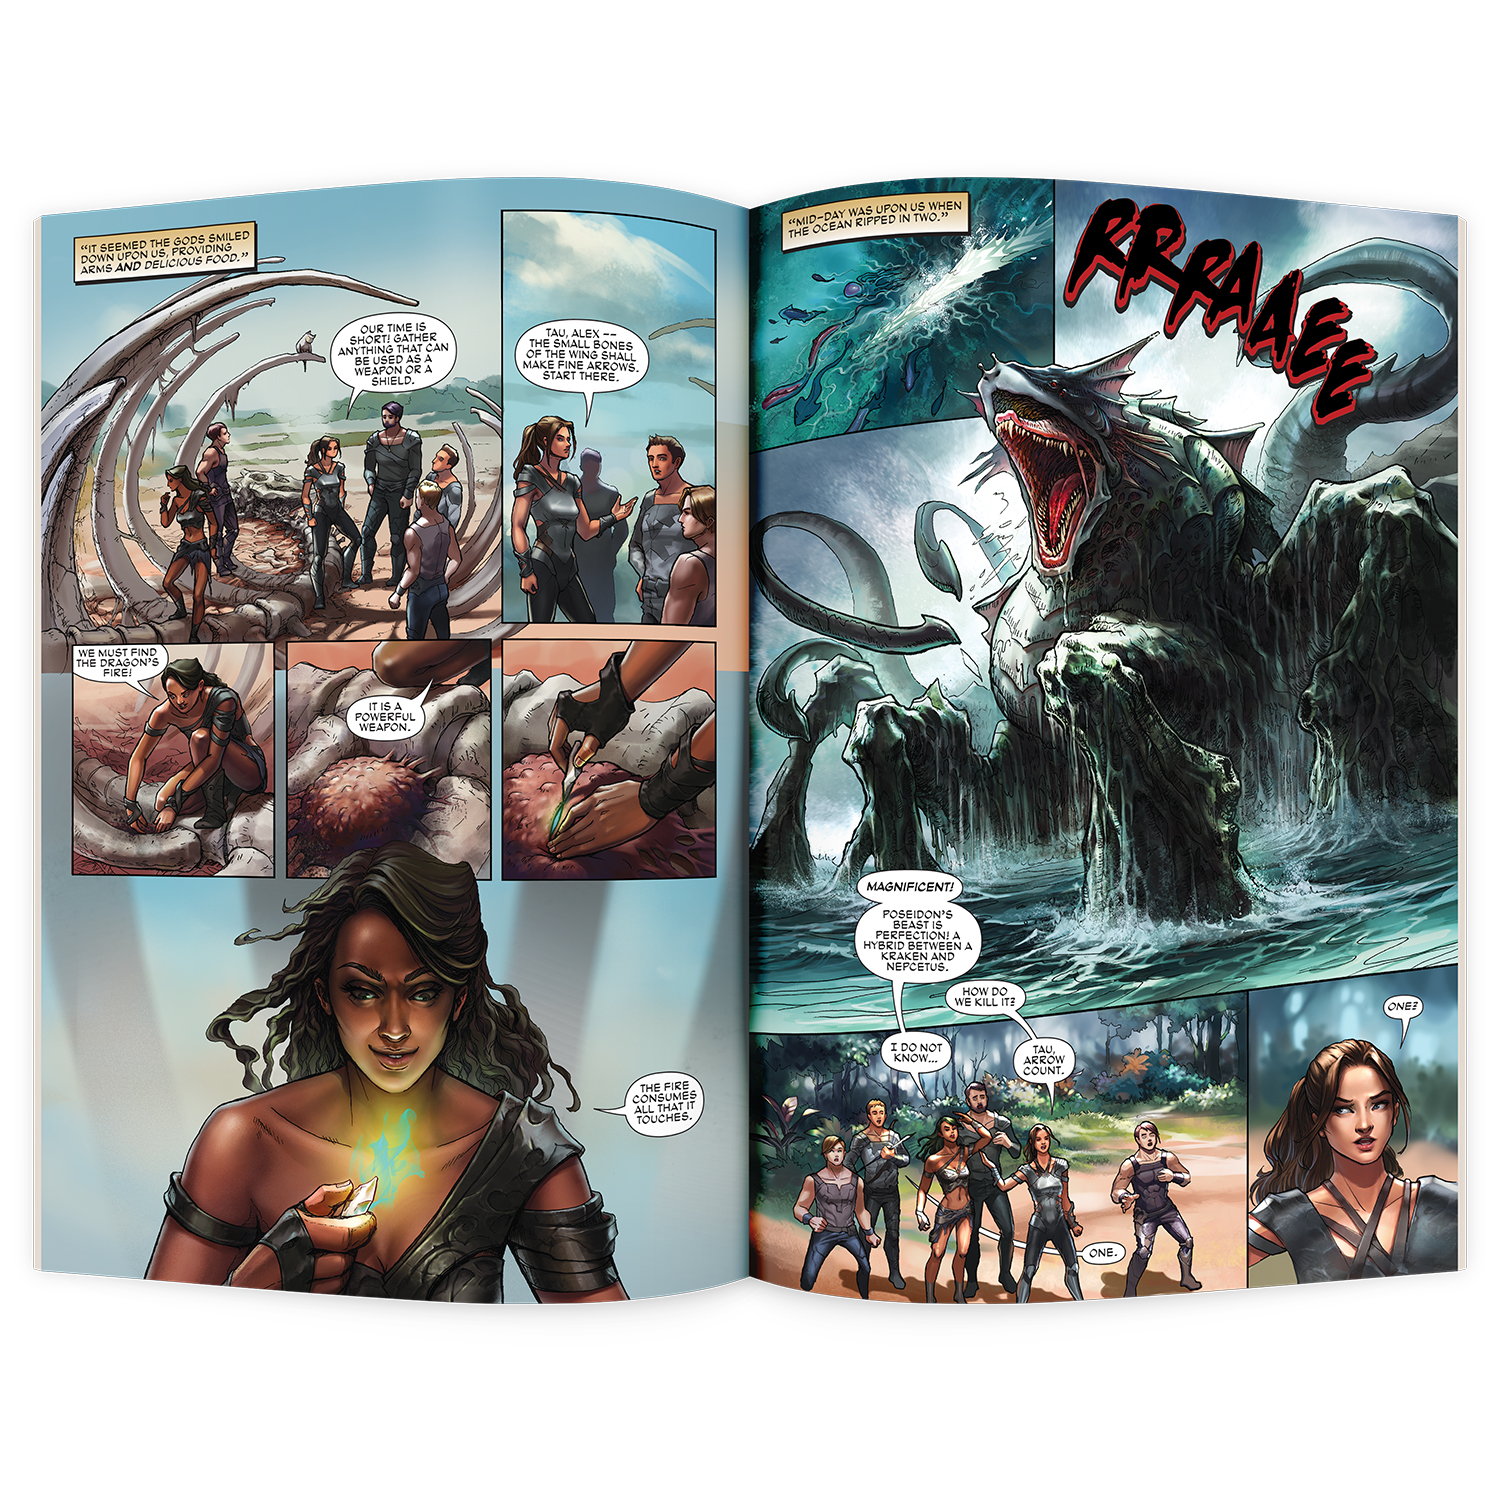 MERAKI Comic Book Inside Pages of Issue 1